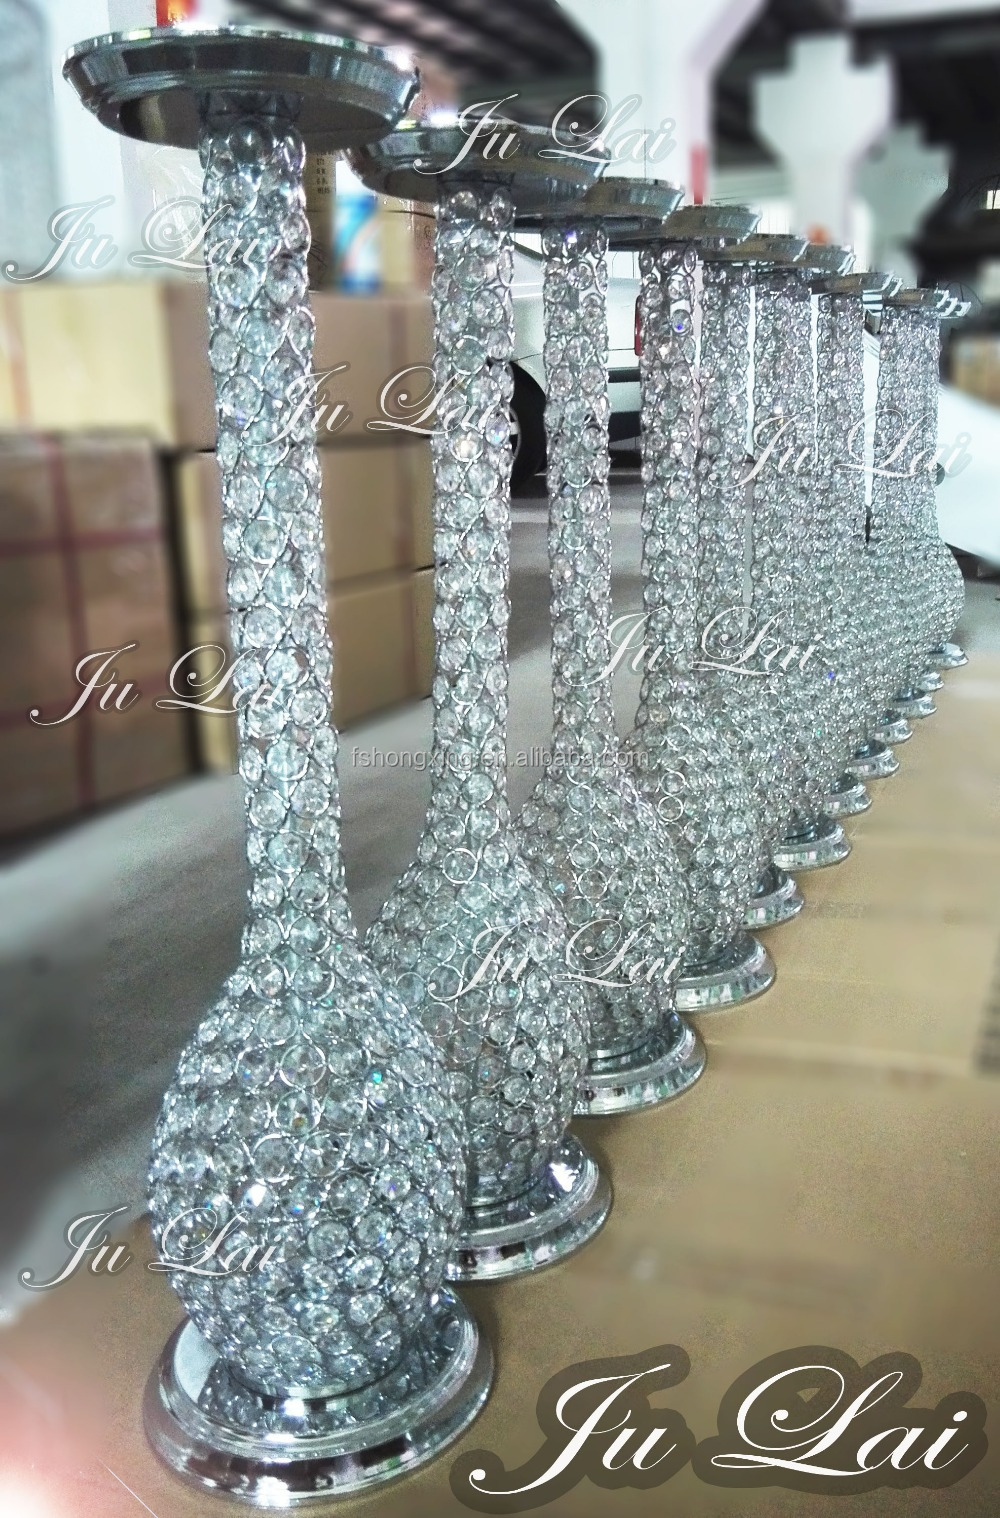 Shining Crystal Wedding Table Centerpieces Flower Stands